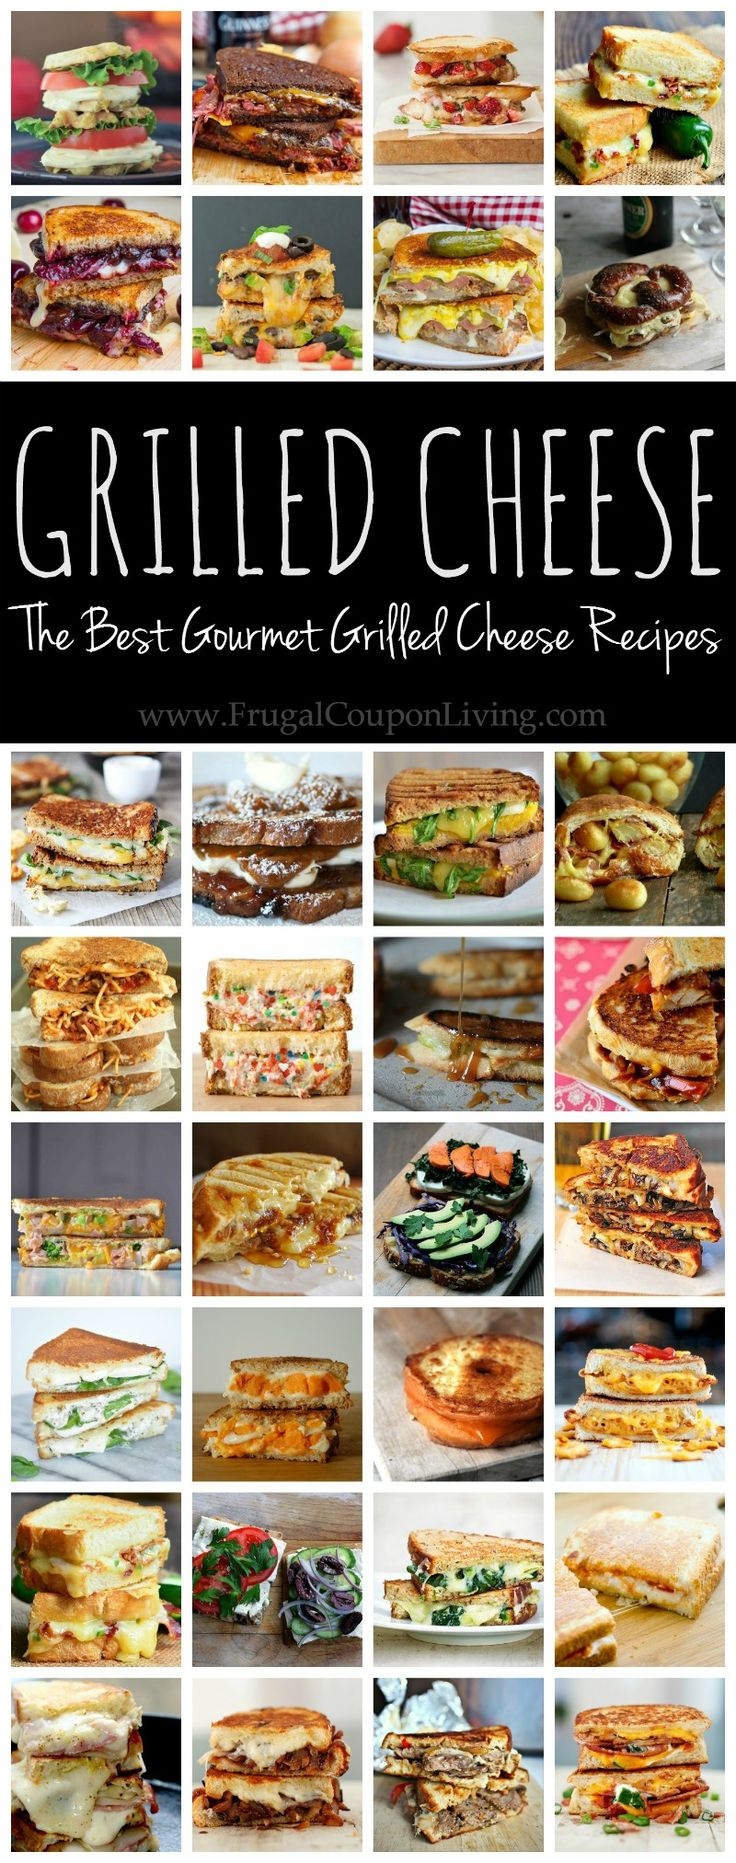 Looking for something new? Check out these amazing gourmet grilled cheese recipes on Frugal Coupon Living. Pin to Pinterest.